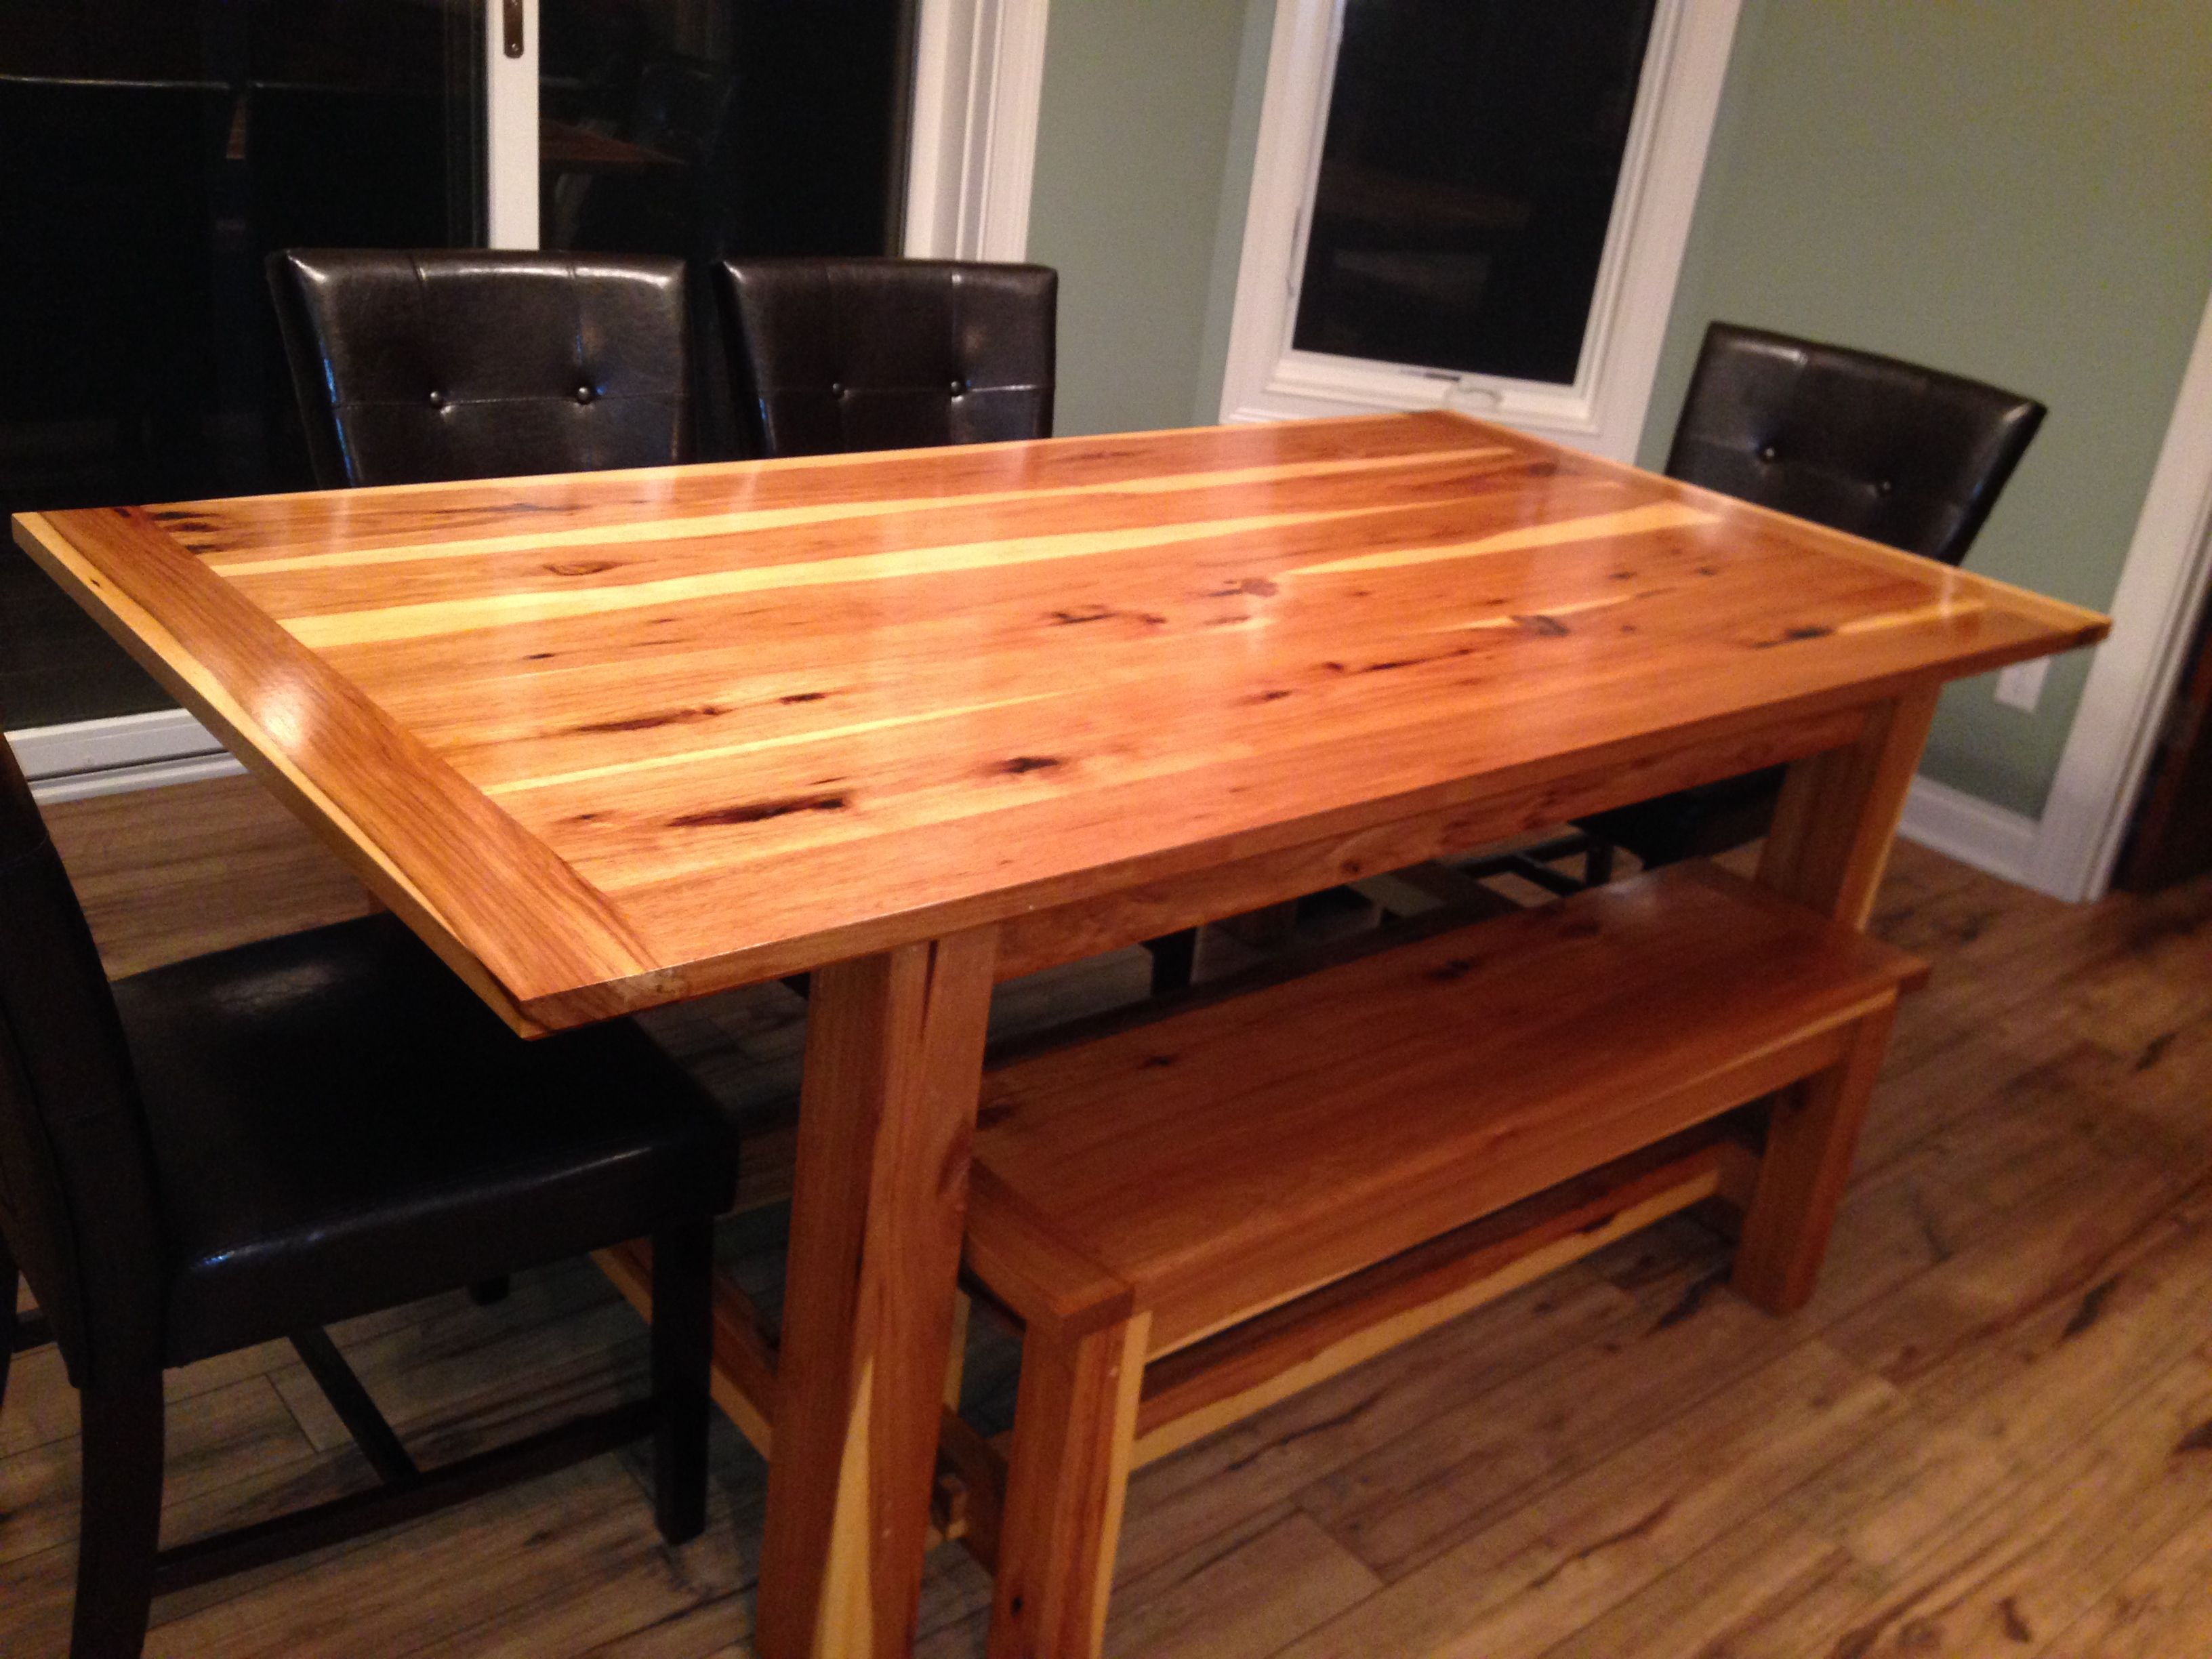 Custom Made Hickory Farm Table With Matching Bench by Black Swamp